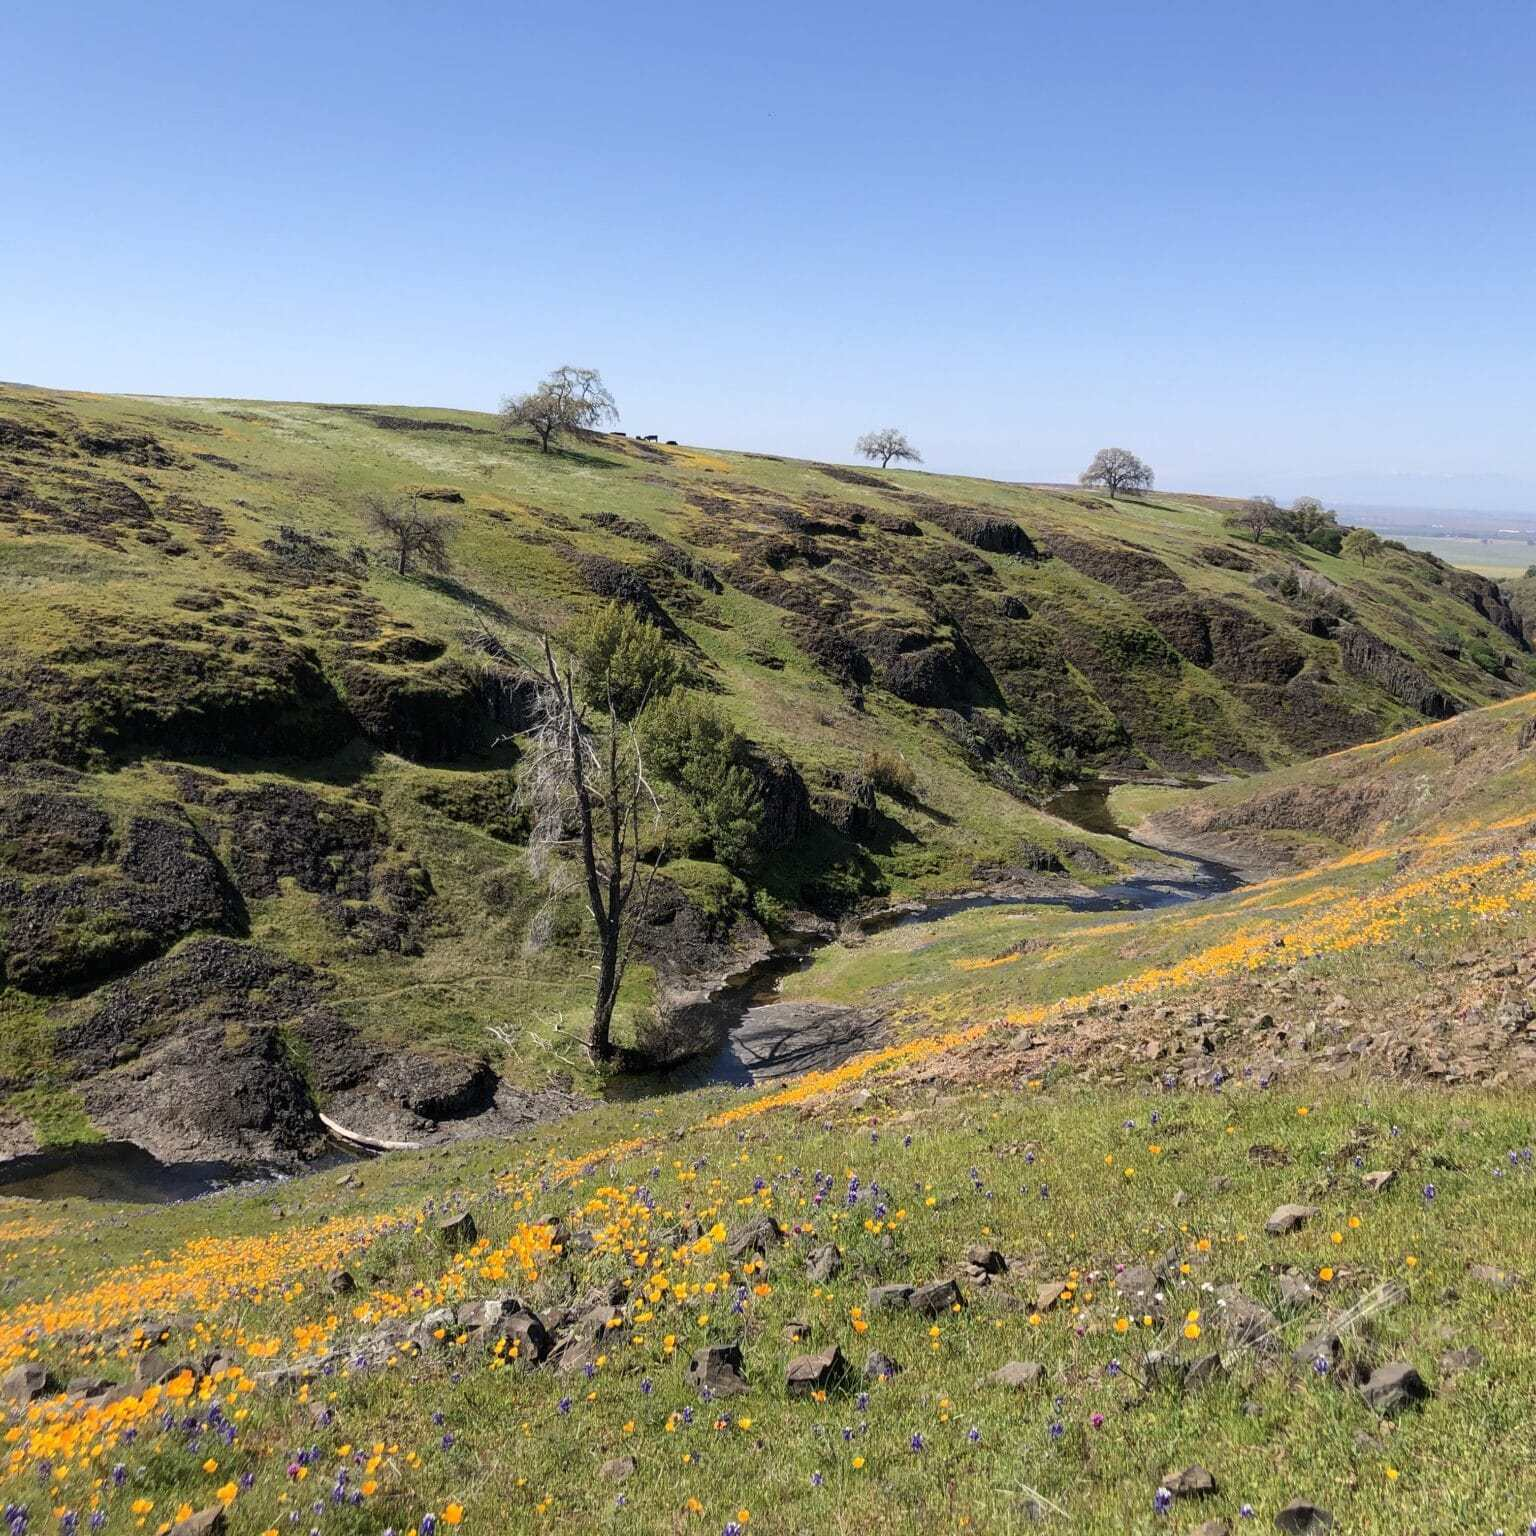 Stream and wildflowers, North Tabletop Mountain Ecological Reserve